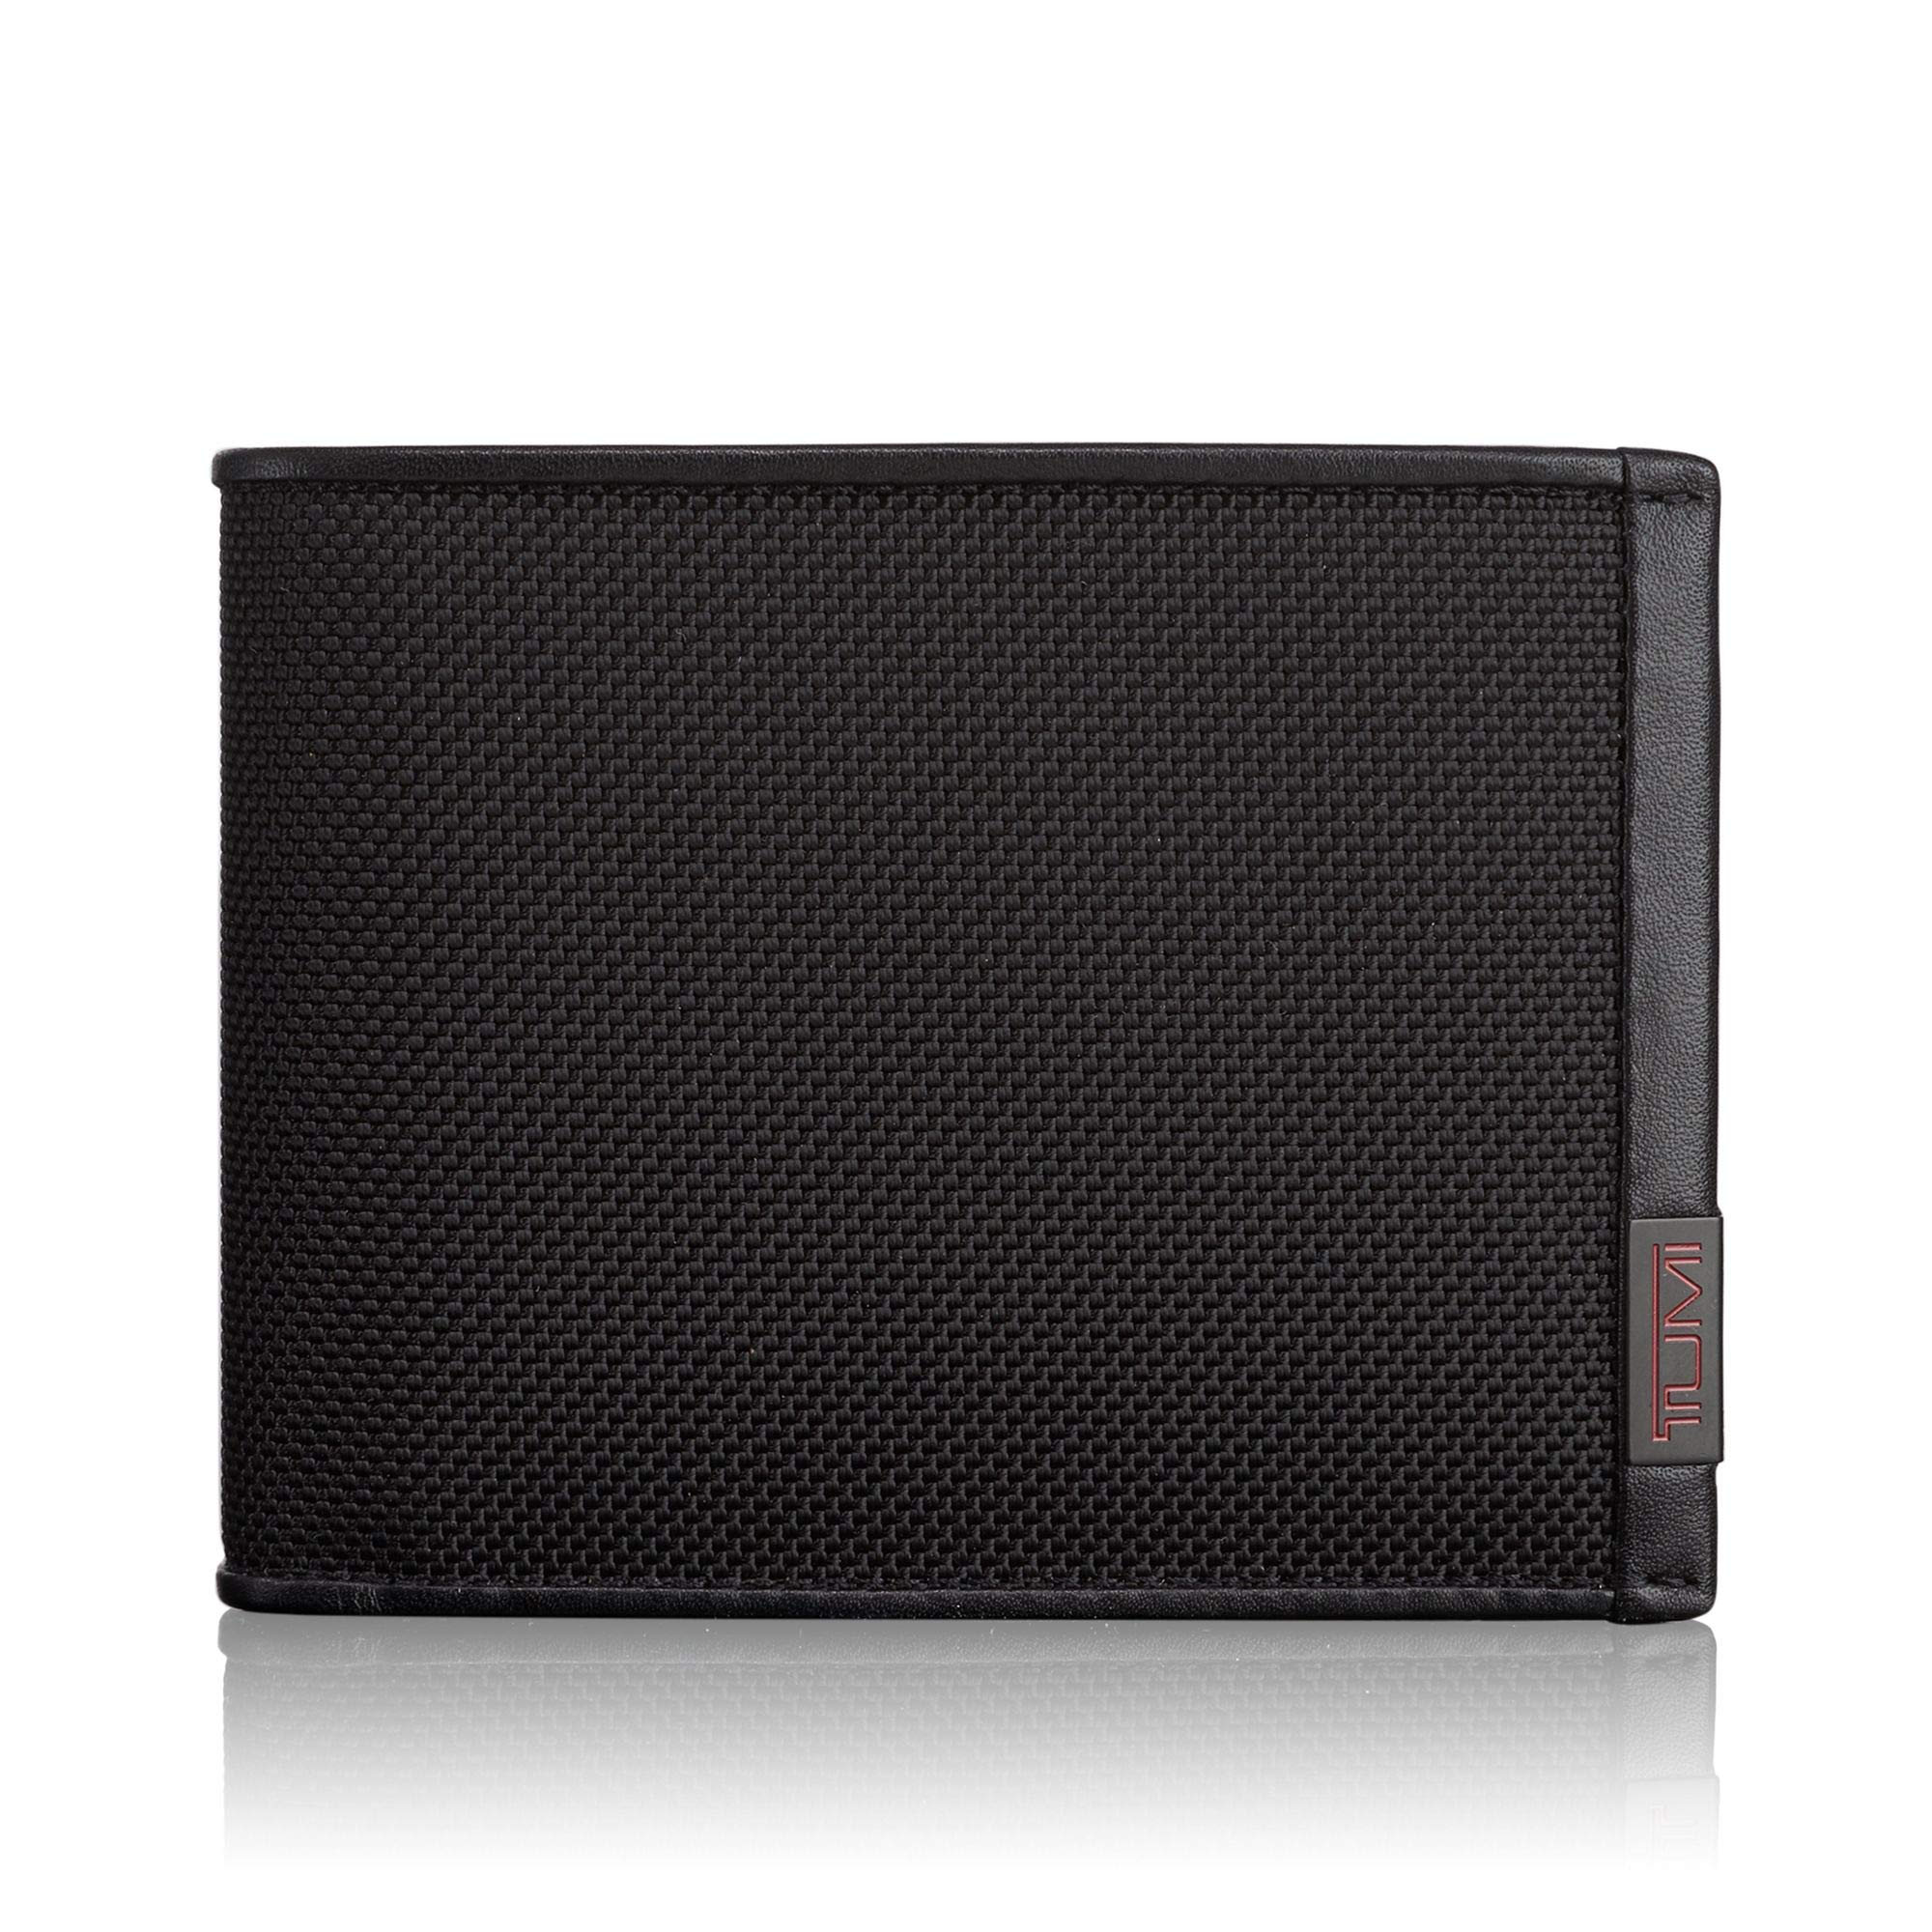 TUMI - Alpha Global Double Billfold Wallet with RFID ID Lock for Men - Black by TUMI